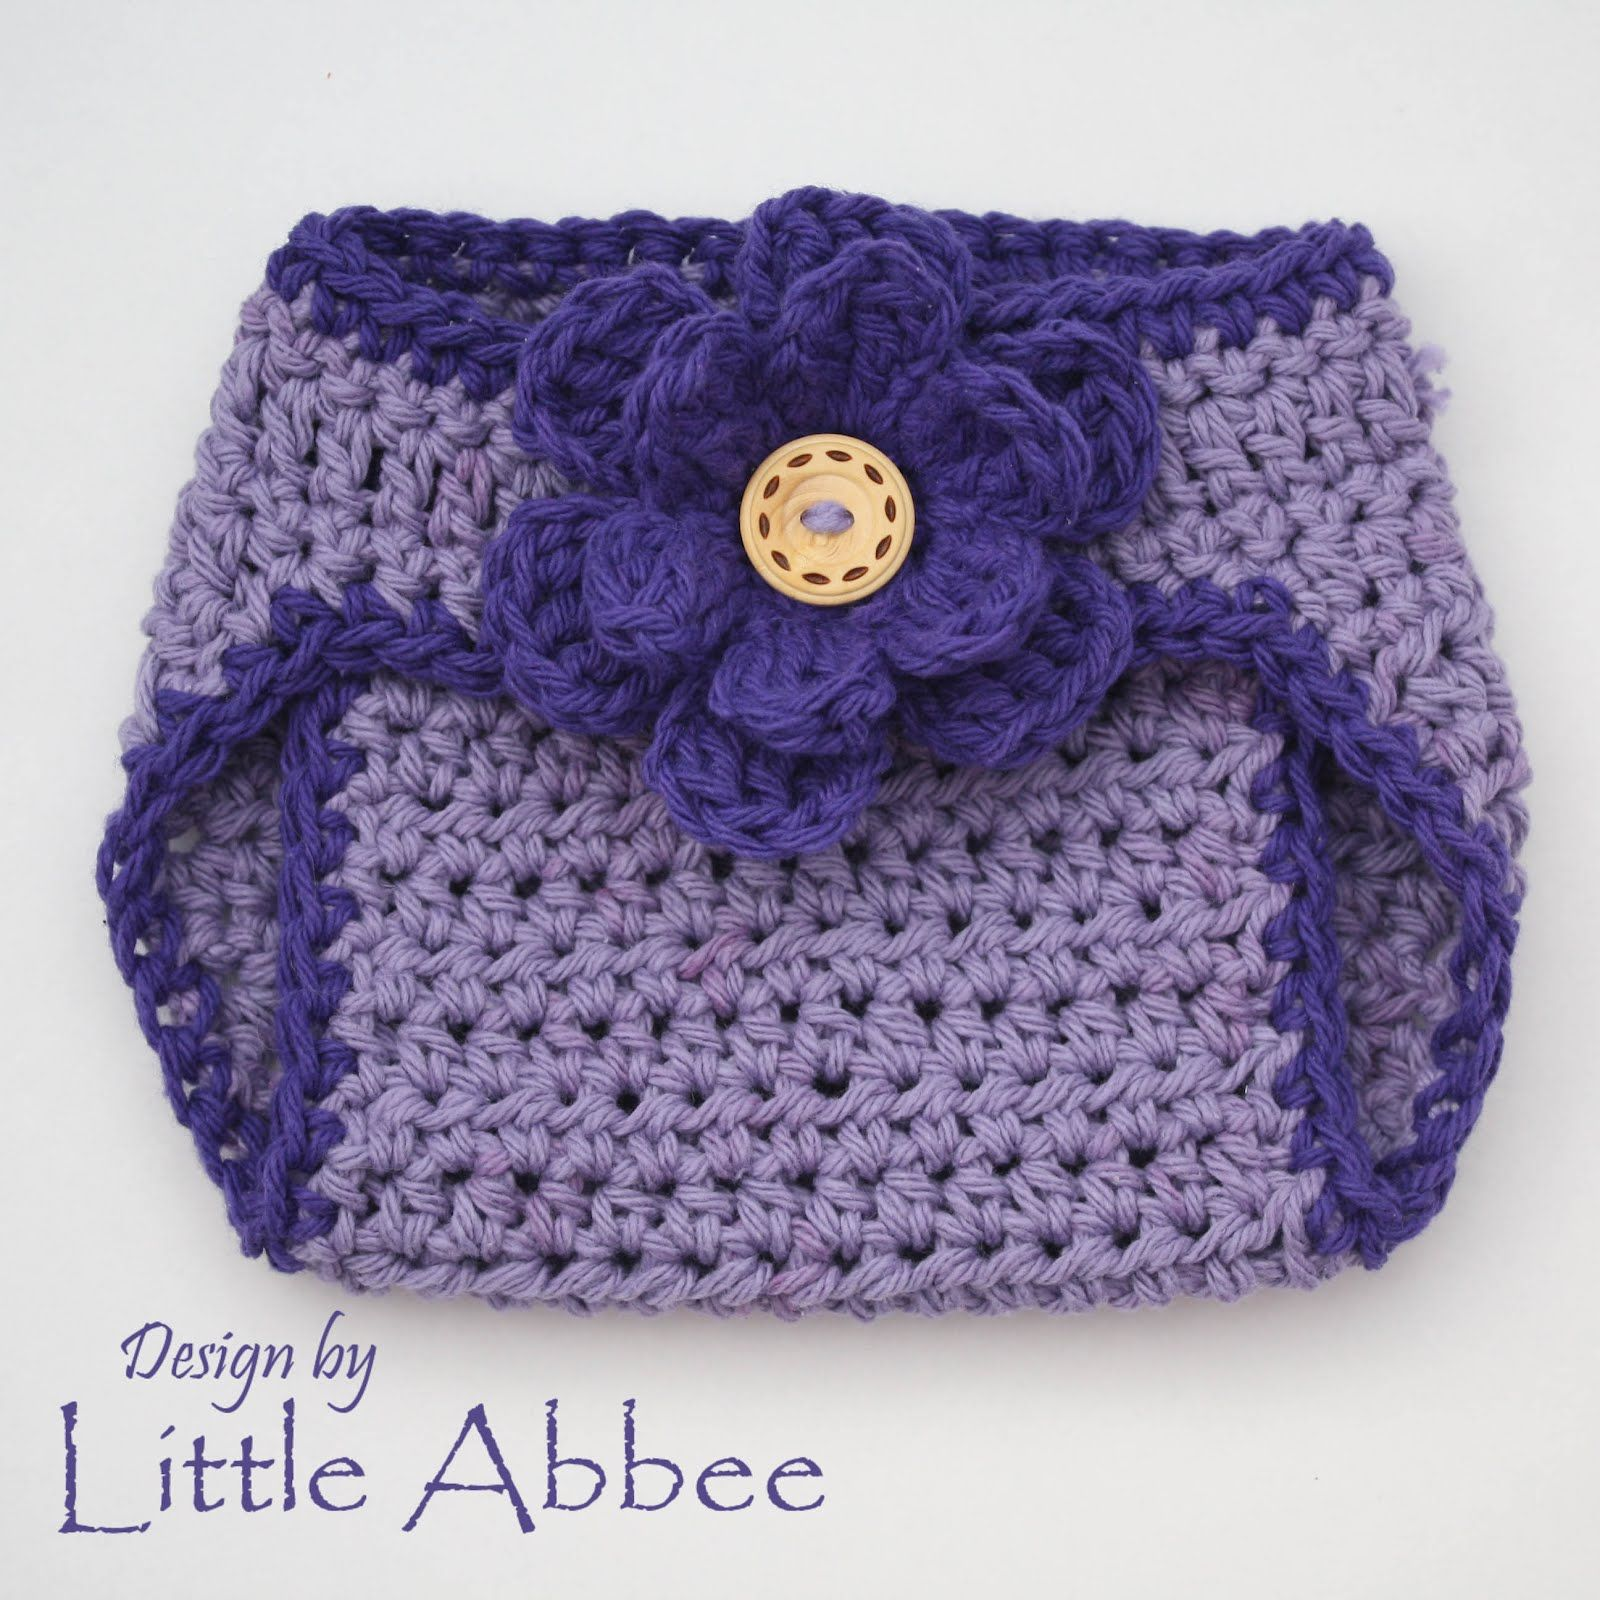 Crochet diaper cover free pattern posted by little abbee at 11 crochet diaper cover free pattern posted by little abbee at 1103 am bankloansurffo Gallery